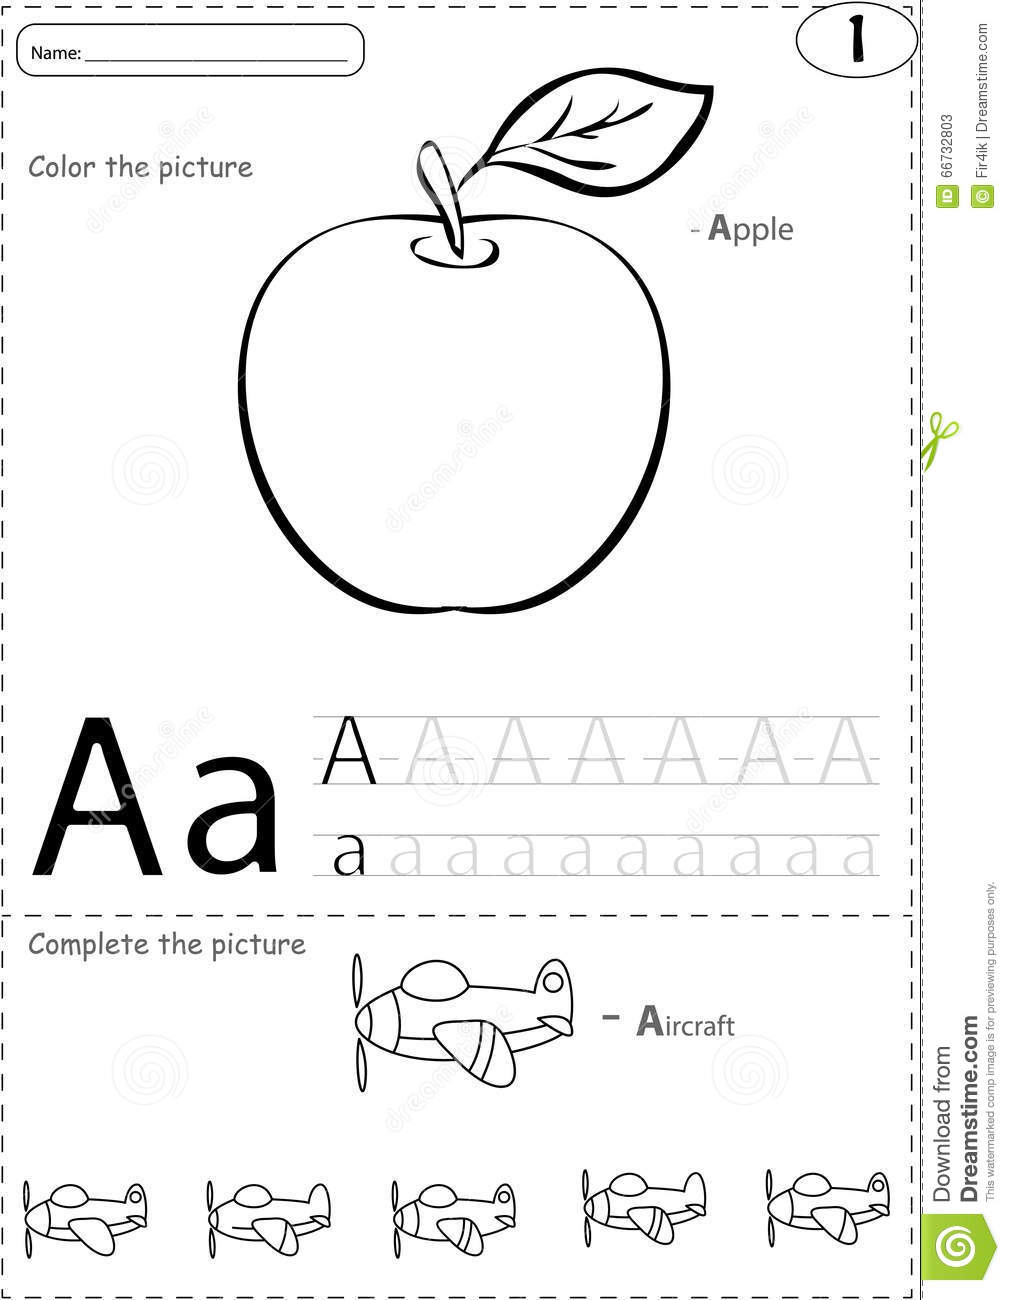 Cartoon Apple And Aircraft. Alphabet Tracing Worksheet: Writing Stock Vector - Image: 66732803